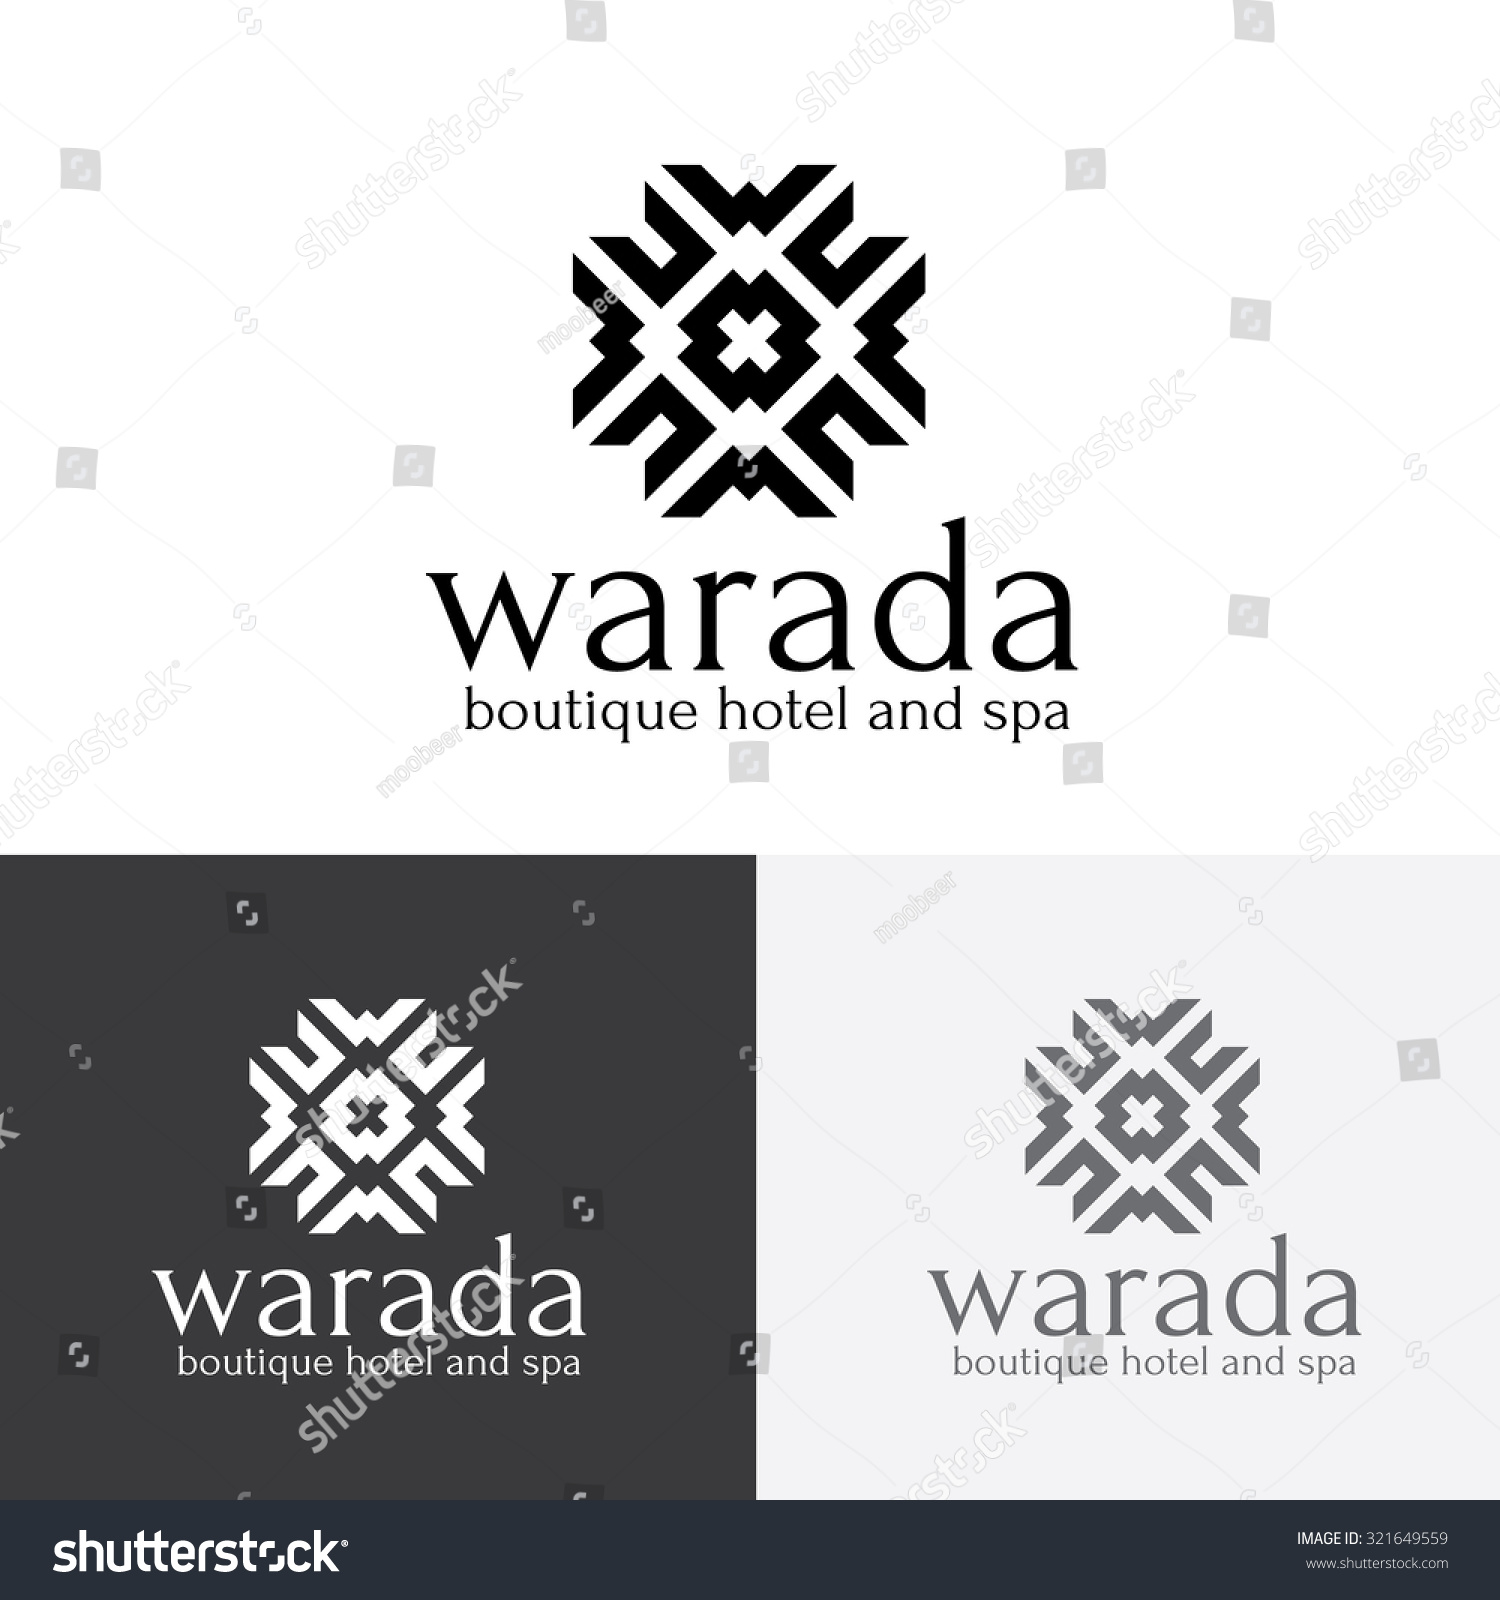 Boutique hotel logohotel logovintage logovector logo stock for Boutique hotel characteristics